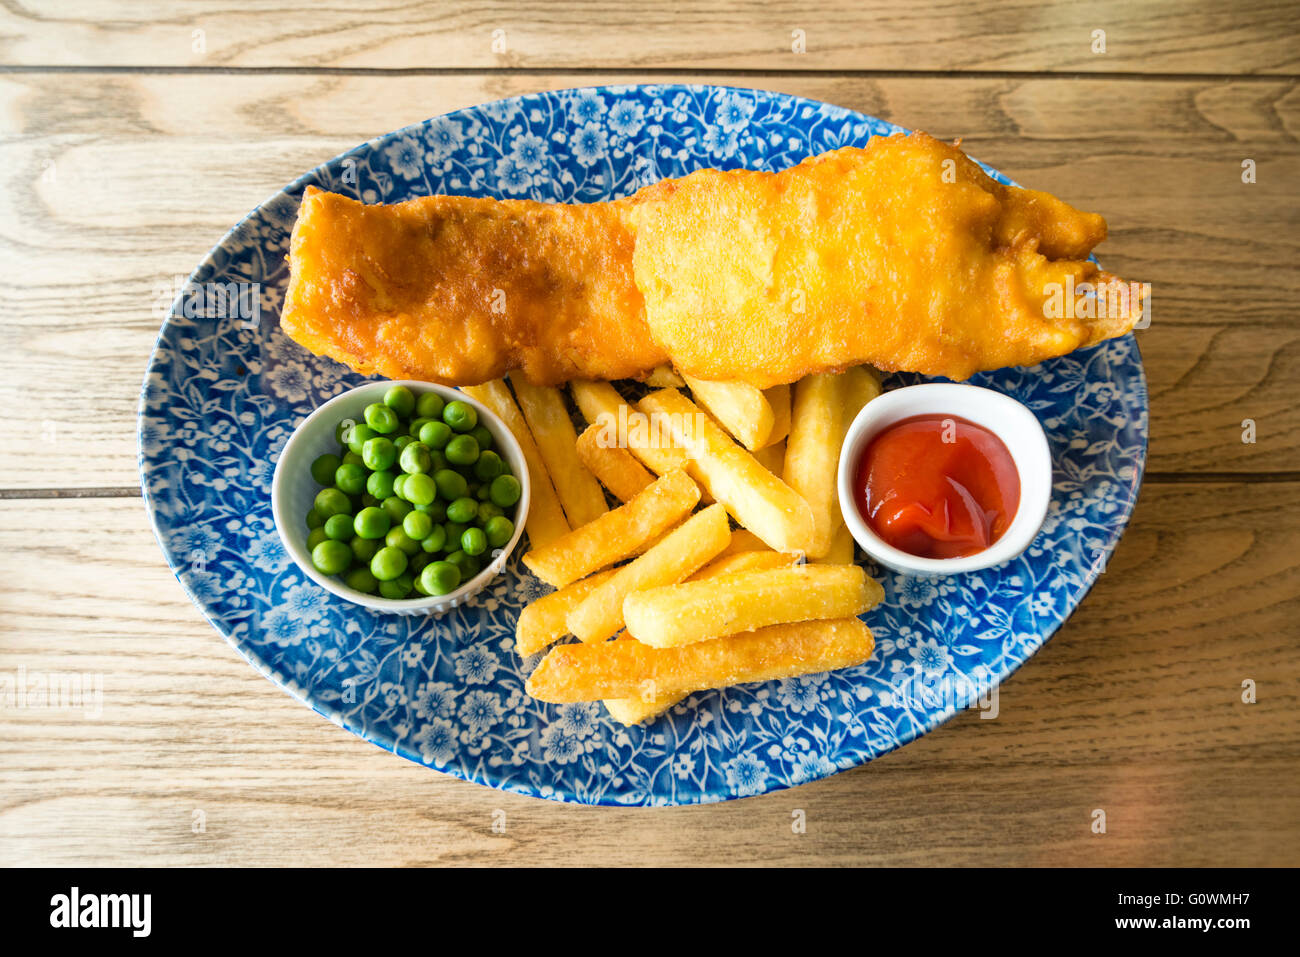 Fish & Chips with peas and ketchup, pub lunch, UK. - Stock Image